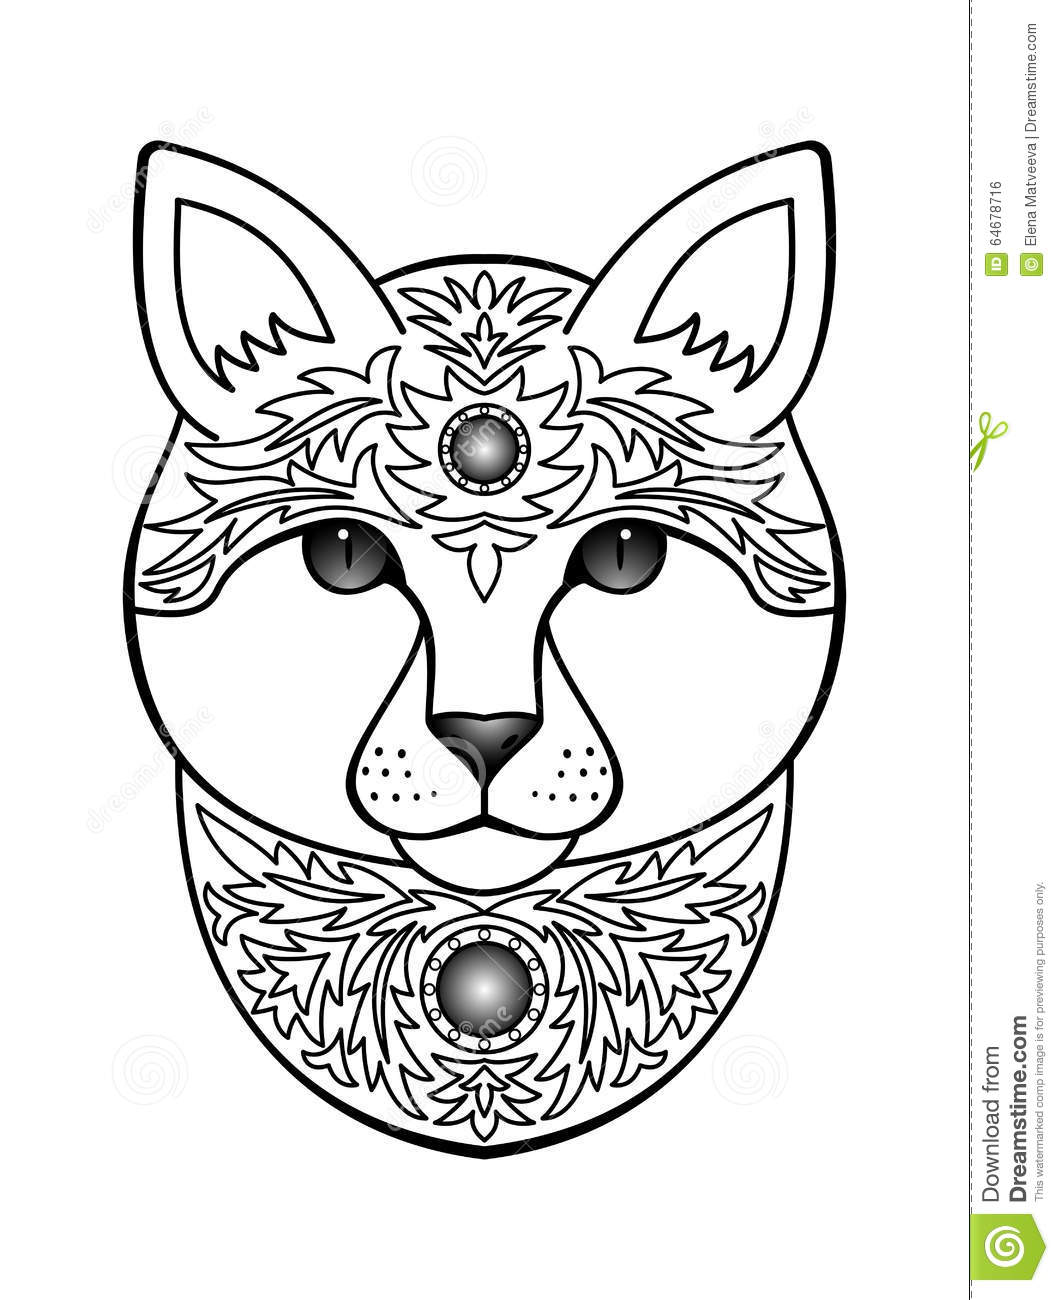 Ornamental White Cat Stock Vector Illustration Of Detailed 64678716